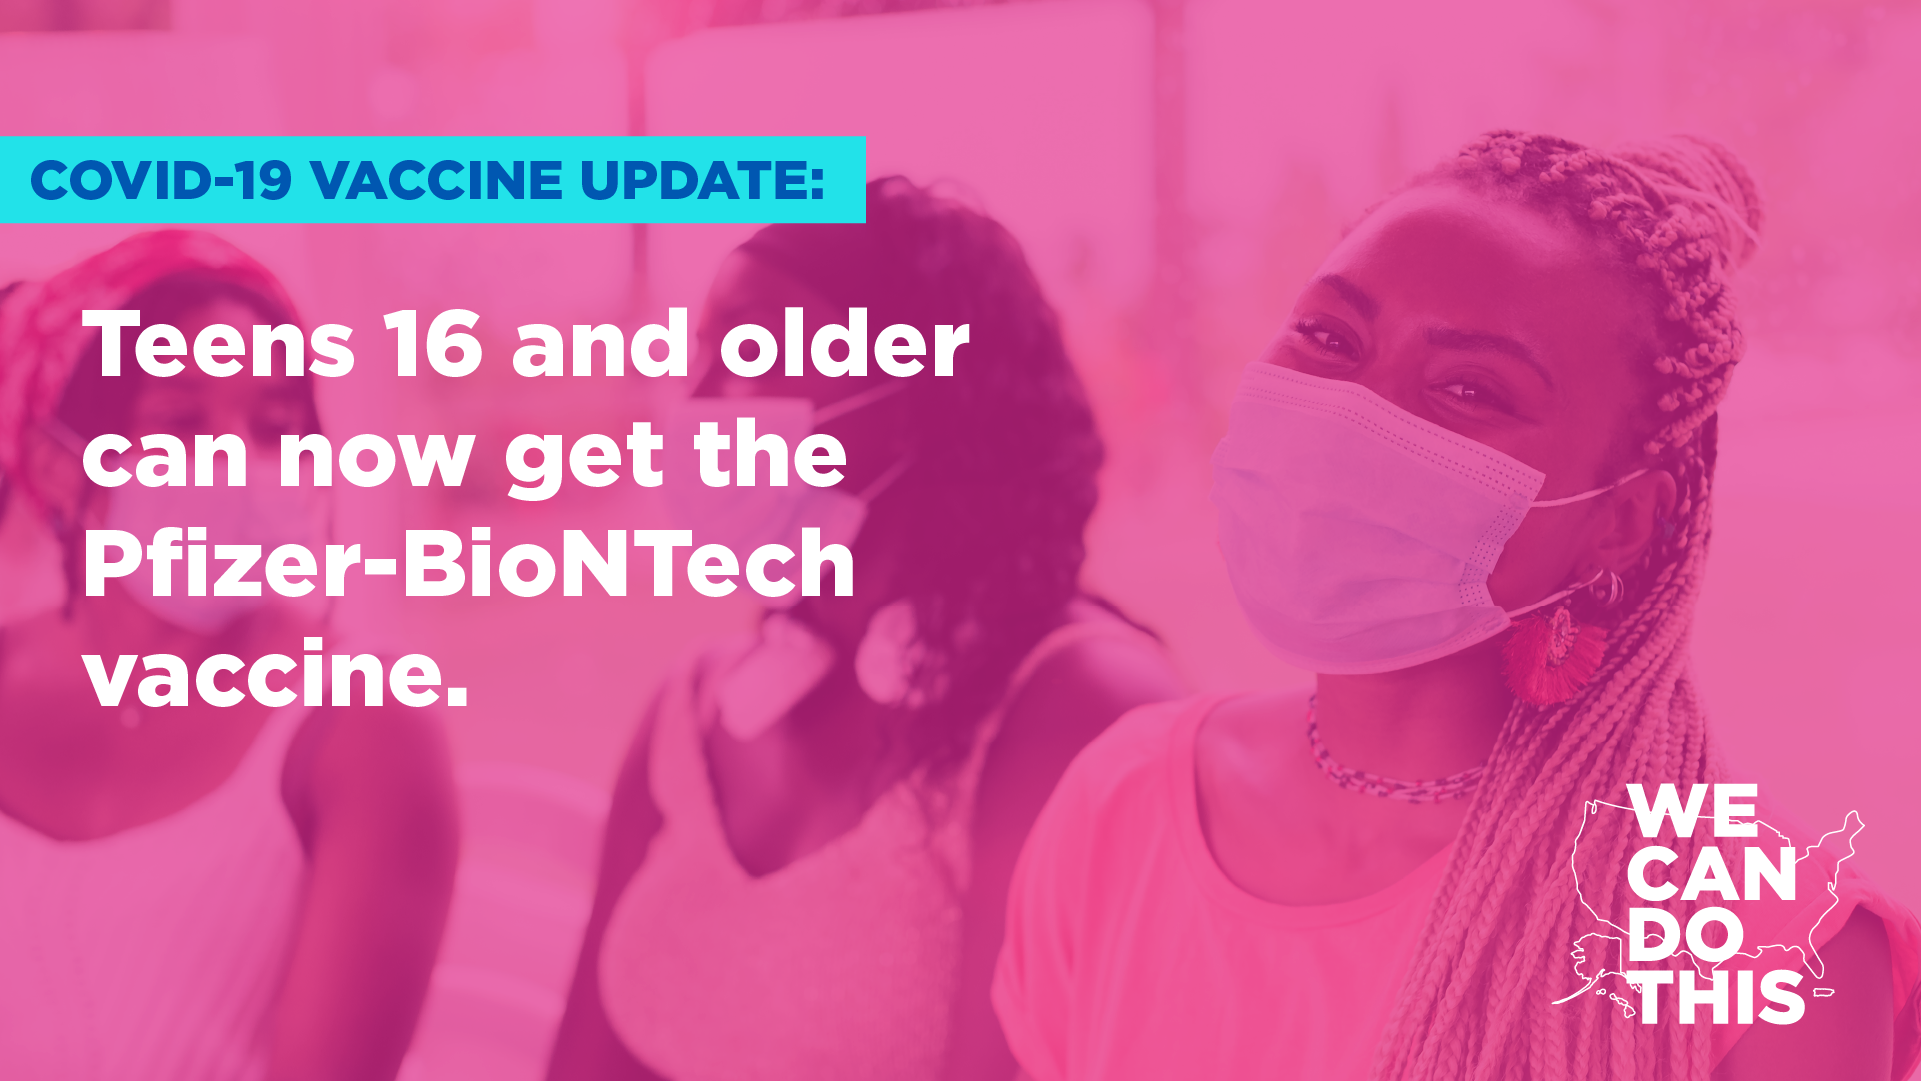 Teens 16 And Older Can Now Get The Pfizer-BioNTech Vaccine Twitter Post